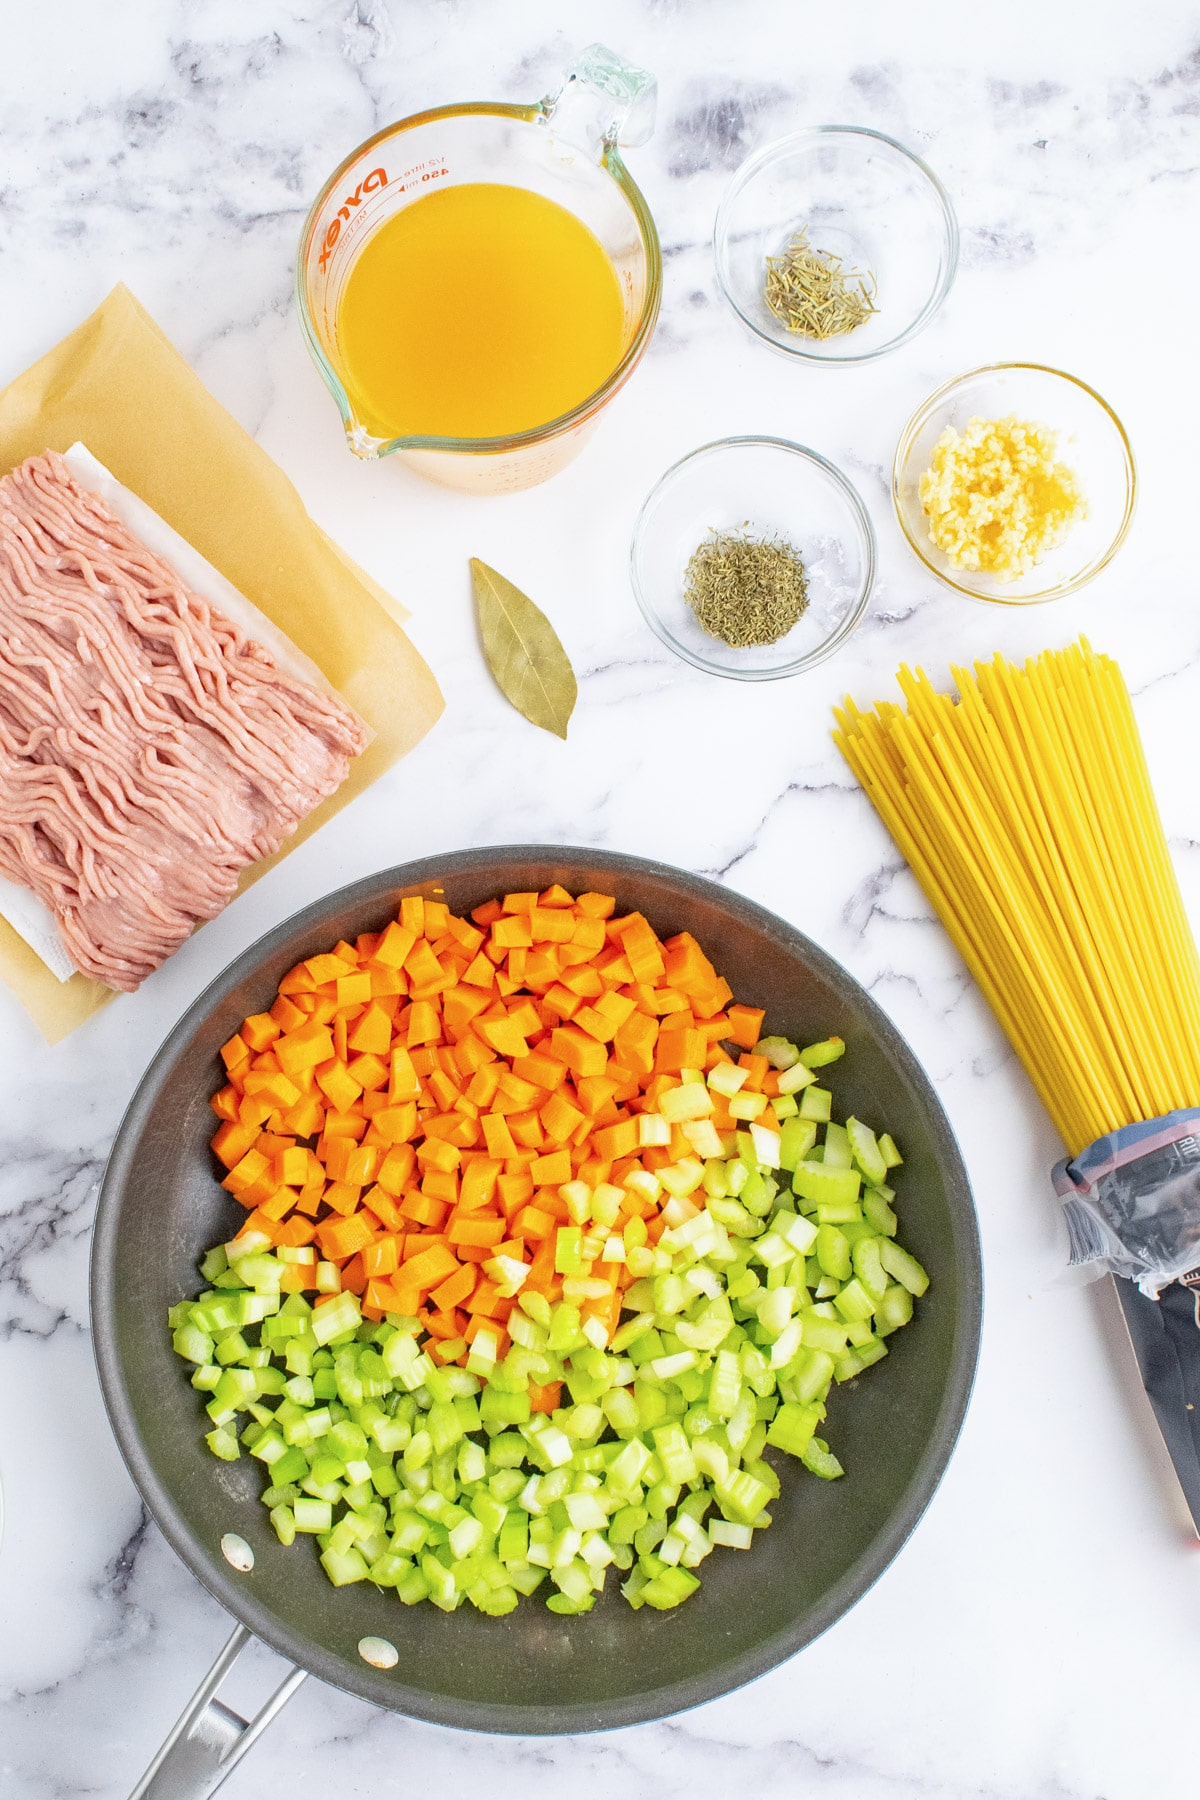 Celery and carrots in a pan with other ingredients for ground turkey pasta around it